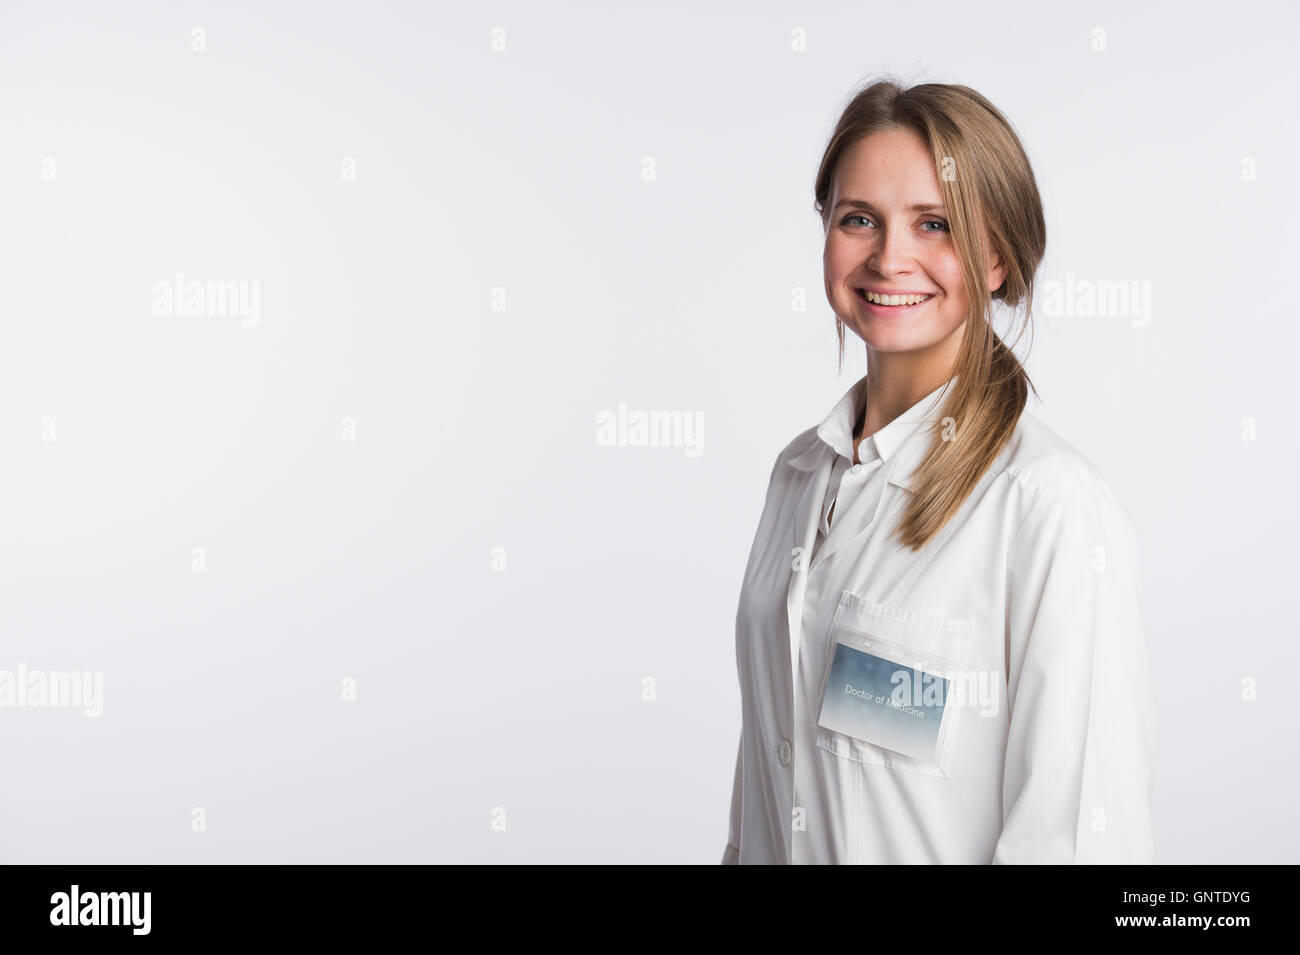 Beautiful nurse portrait on white with copy space - Stock Image